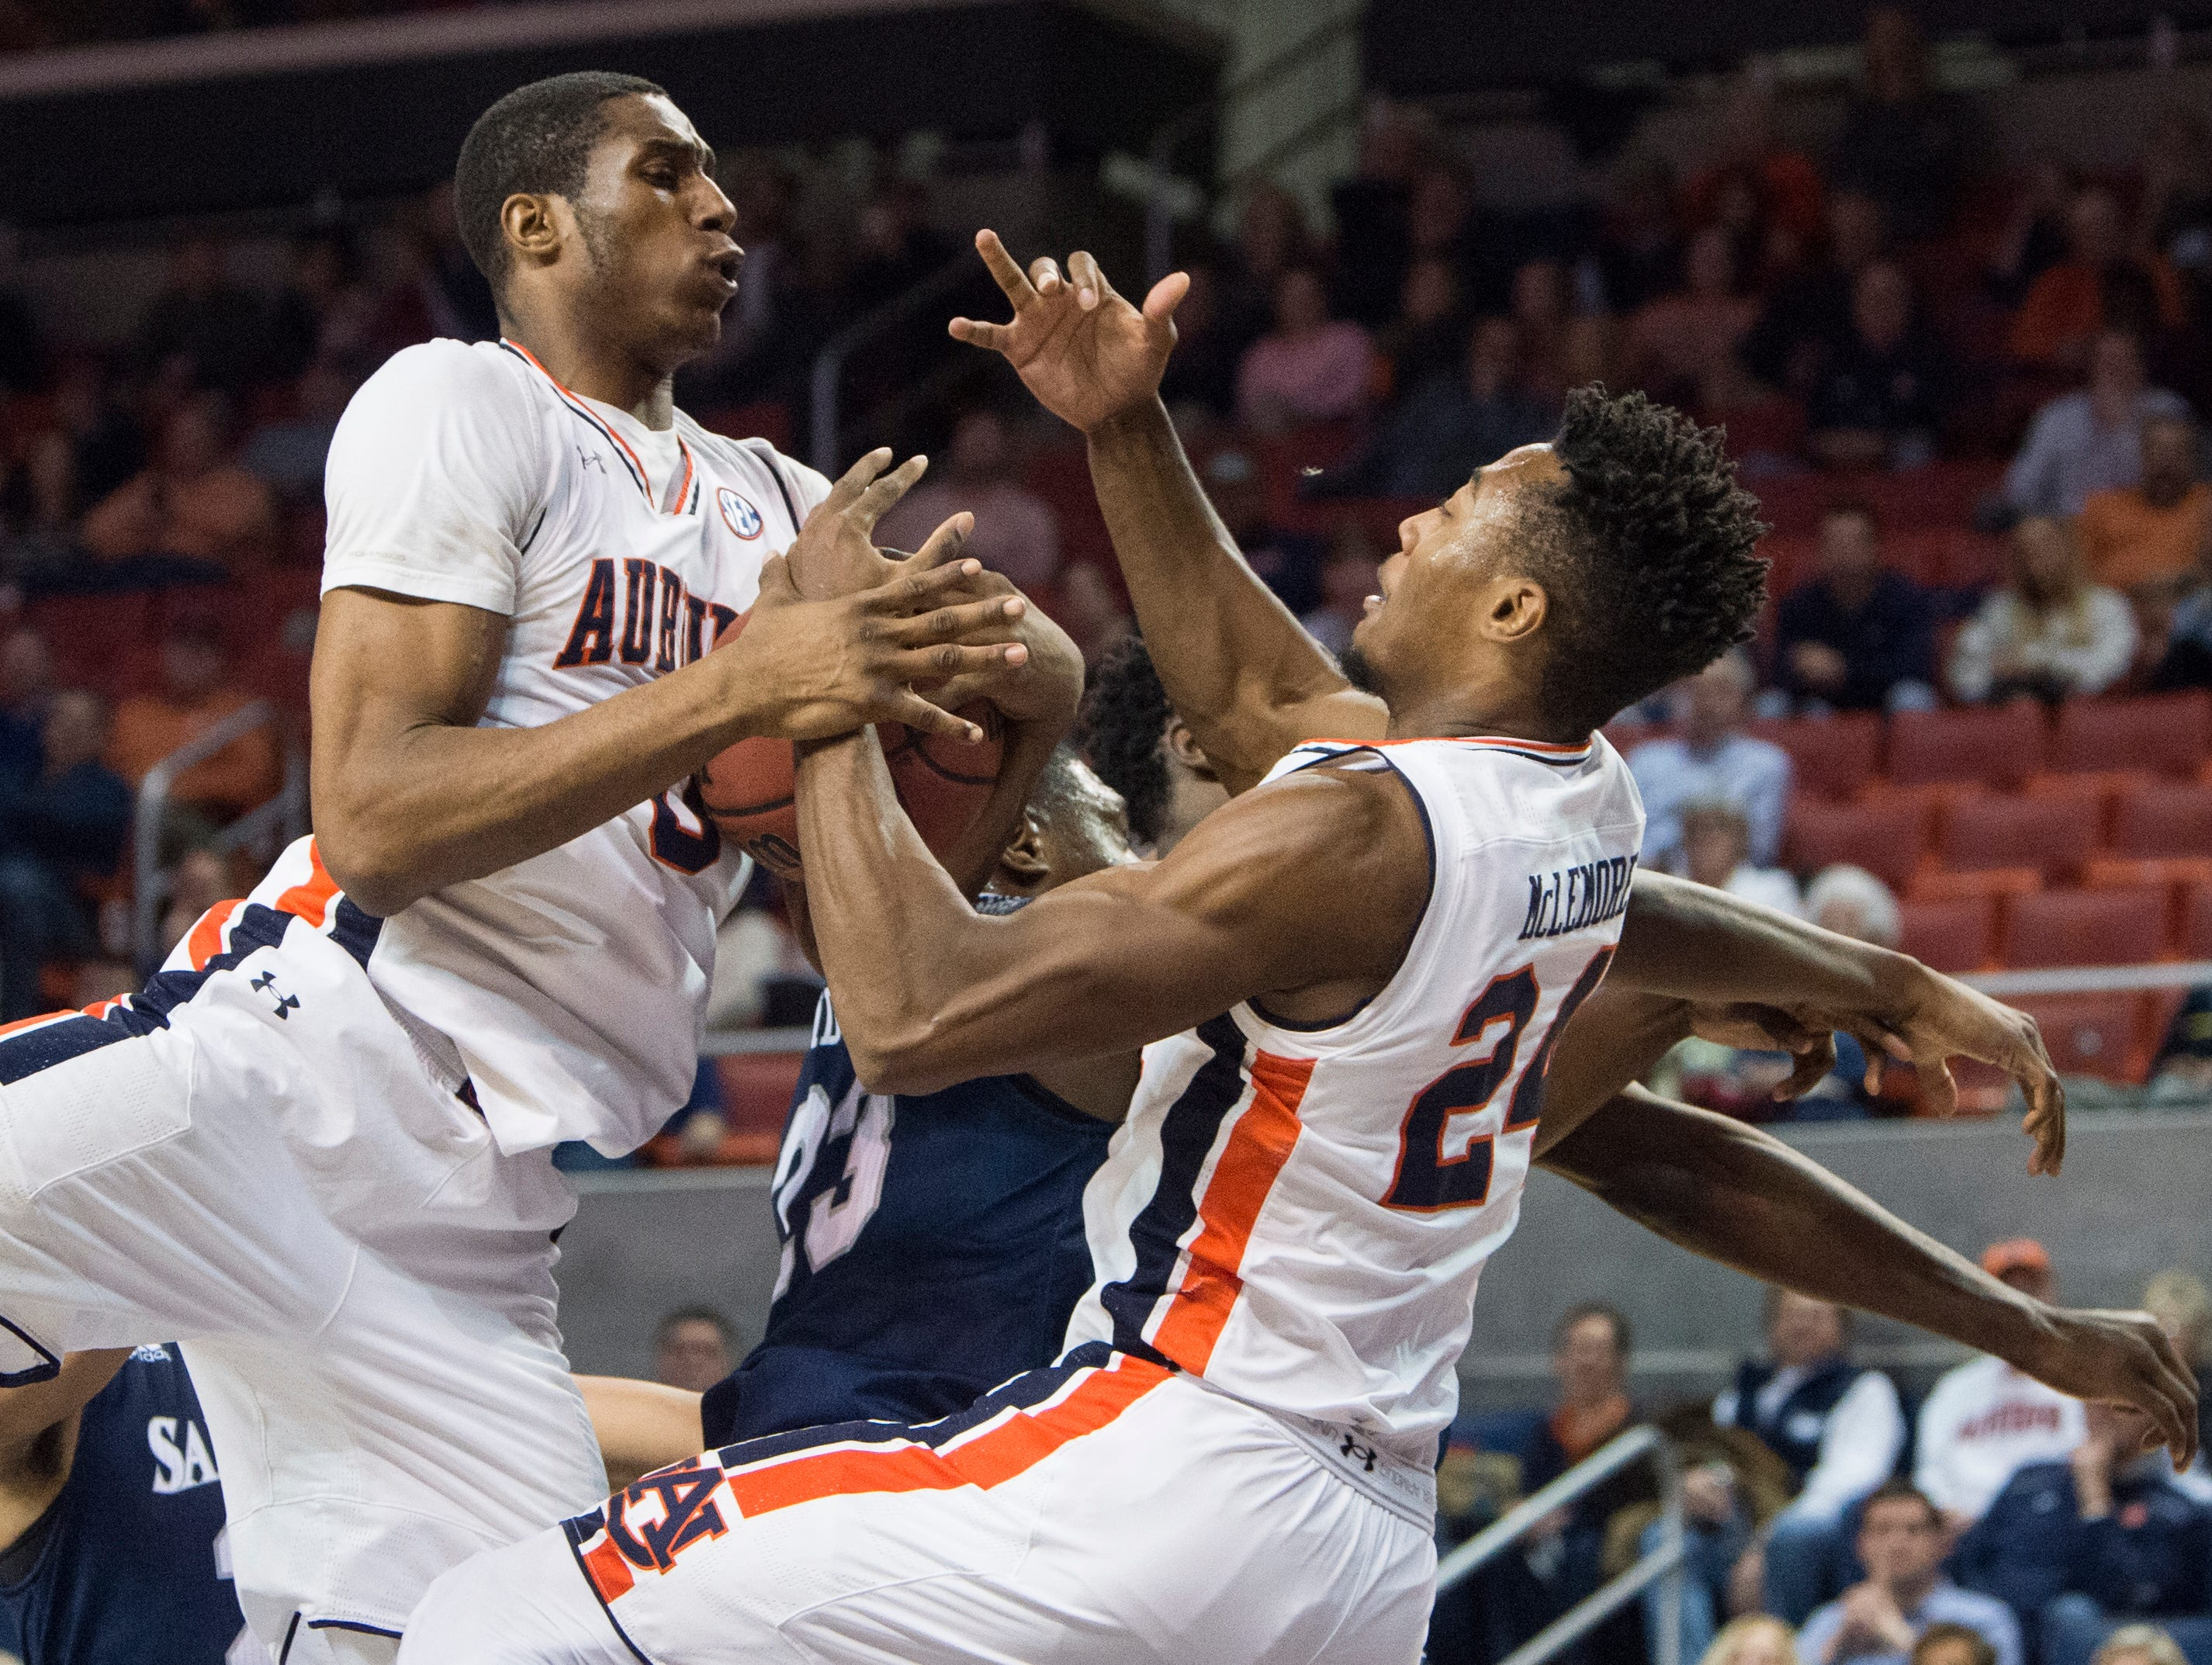 Auburn forward Horace Spencer (0) and forward Anfernee McLemore (24) fight for a rebound at Auburn Arena in Auburn, Ala., on Wednesday, Nov. 28, 2018. Auburn defeated Saint Peter's 99-49.